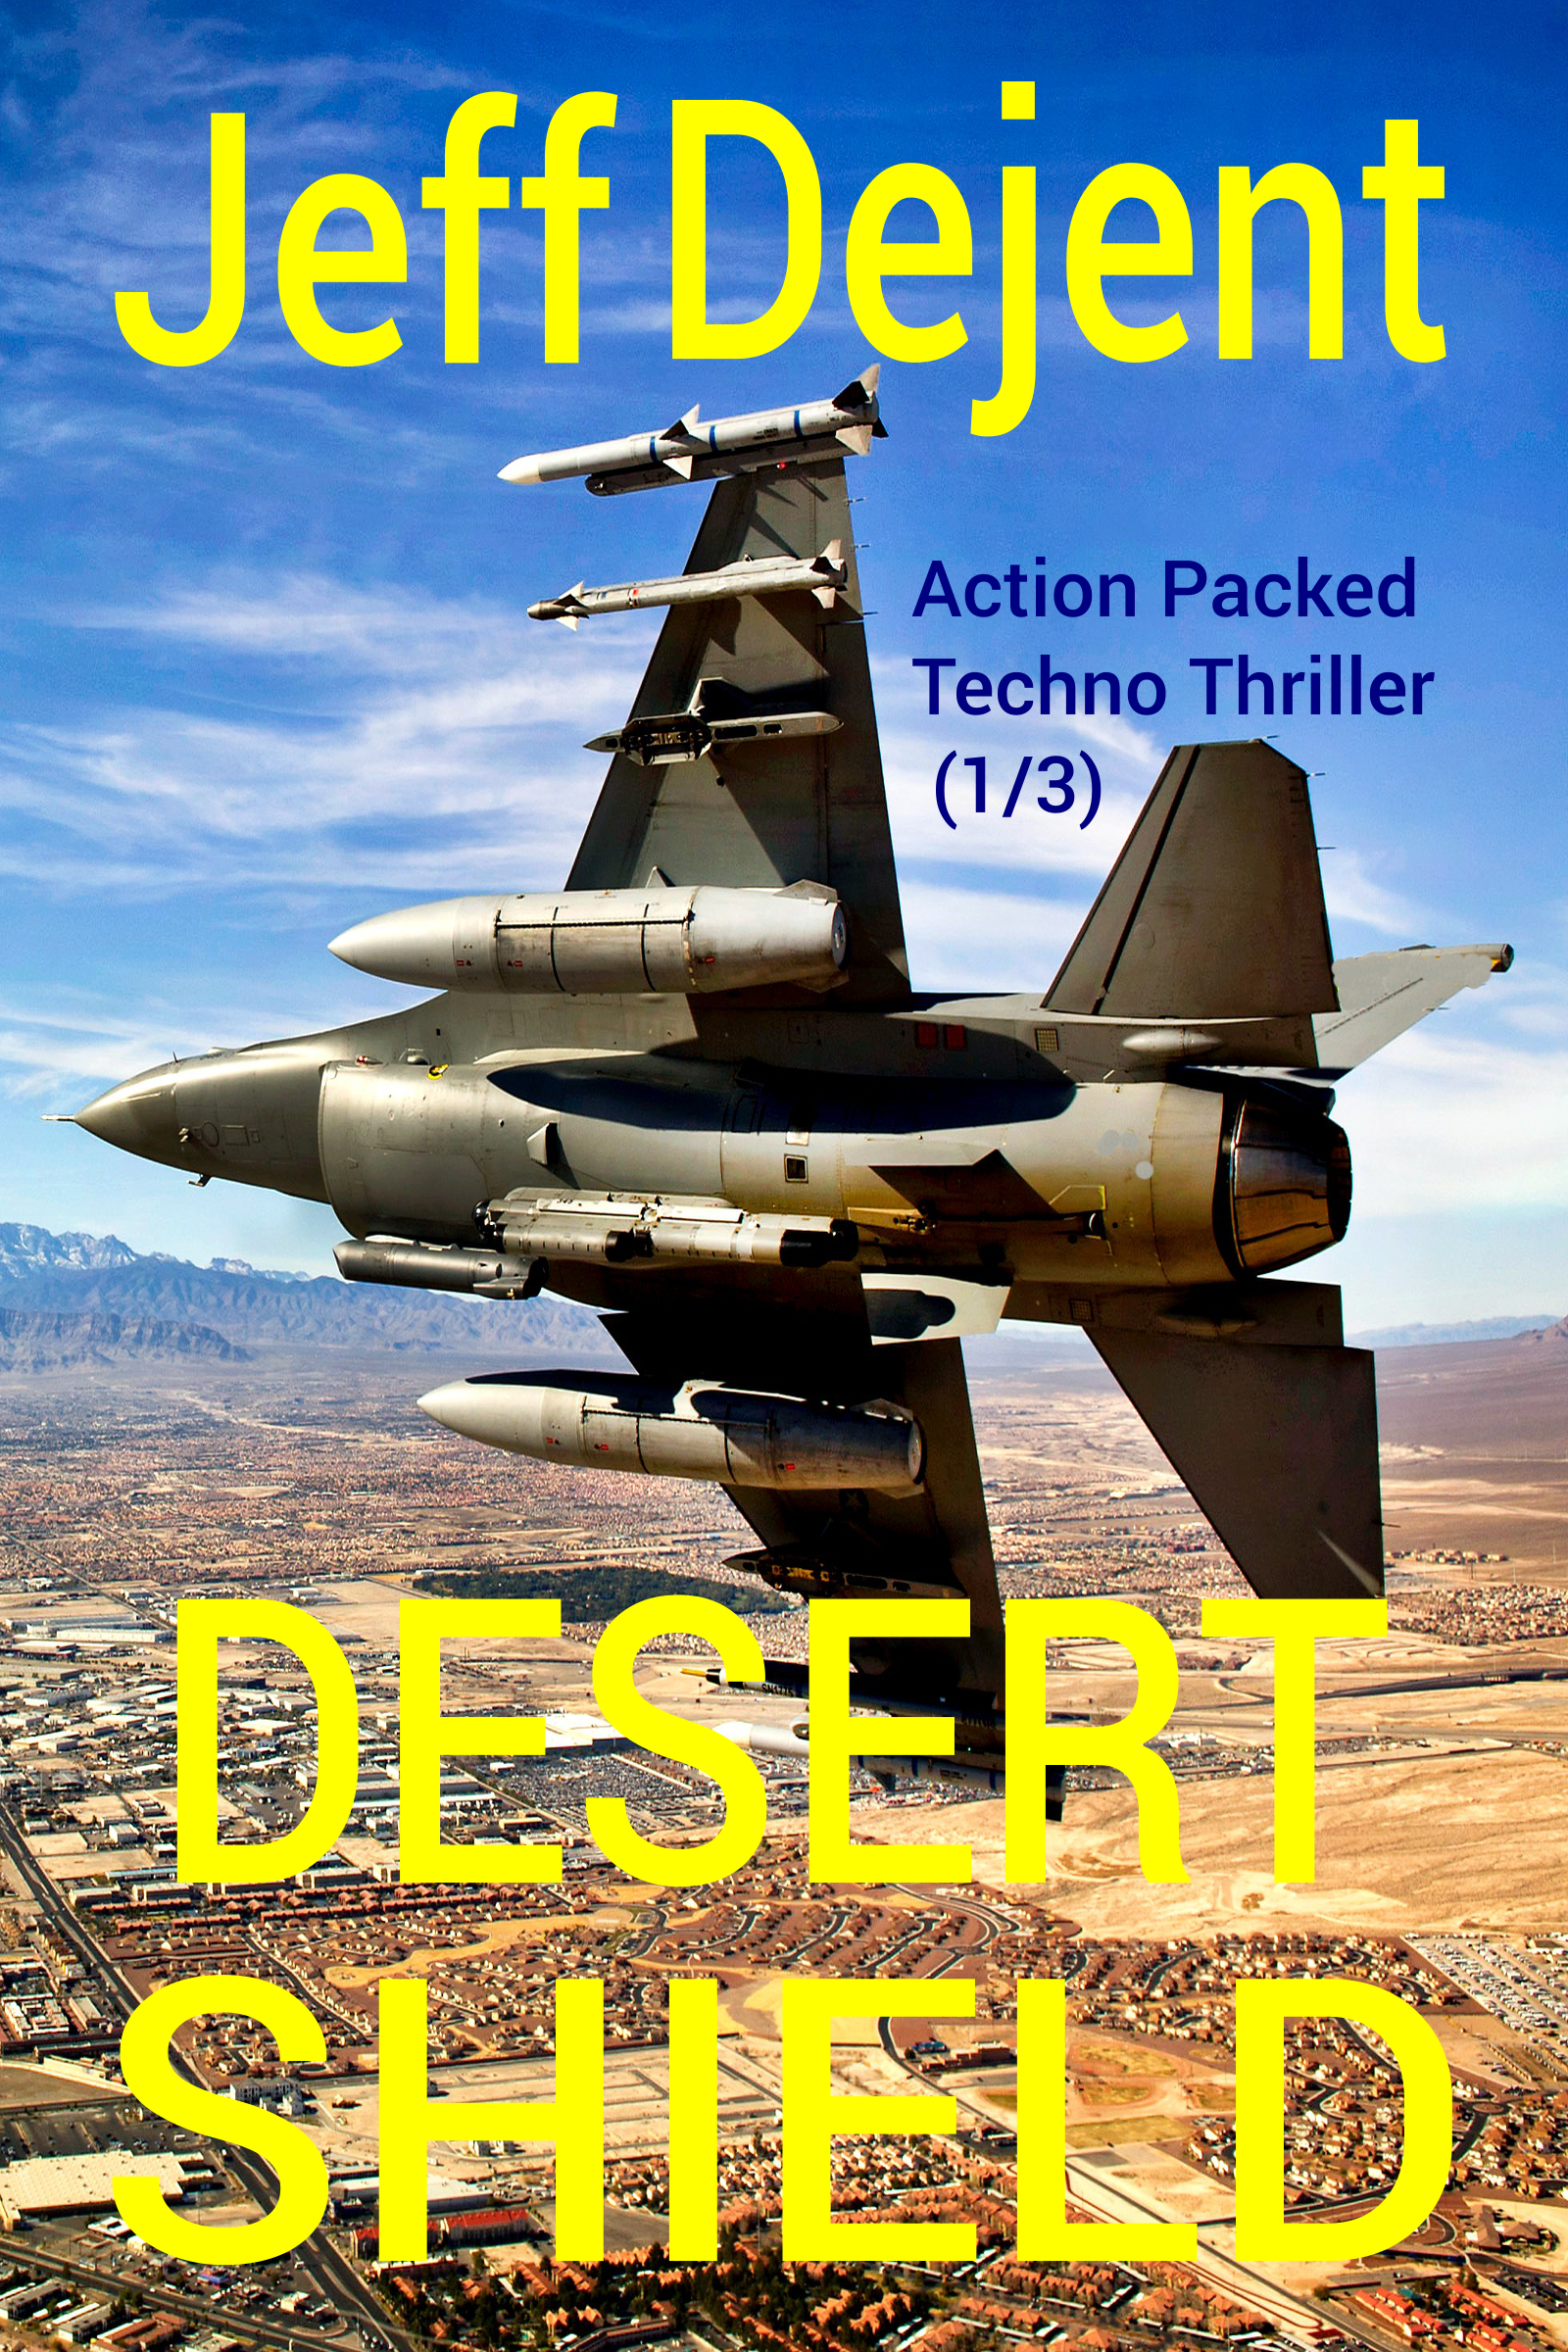 Desert Shield Action Packed Techno Thriller Part 1